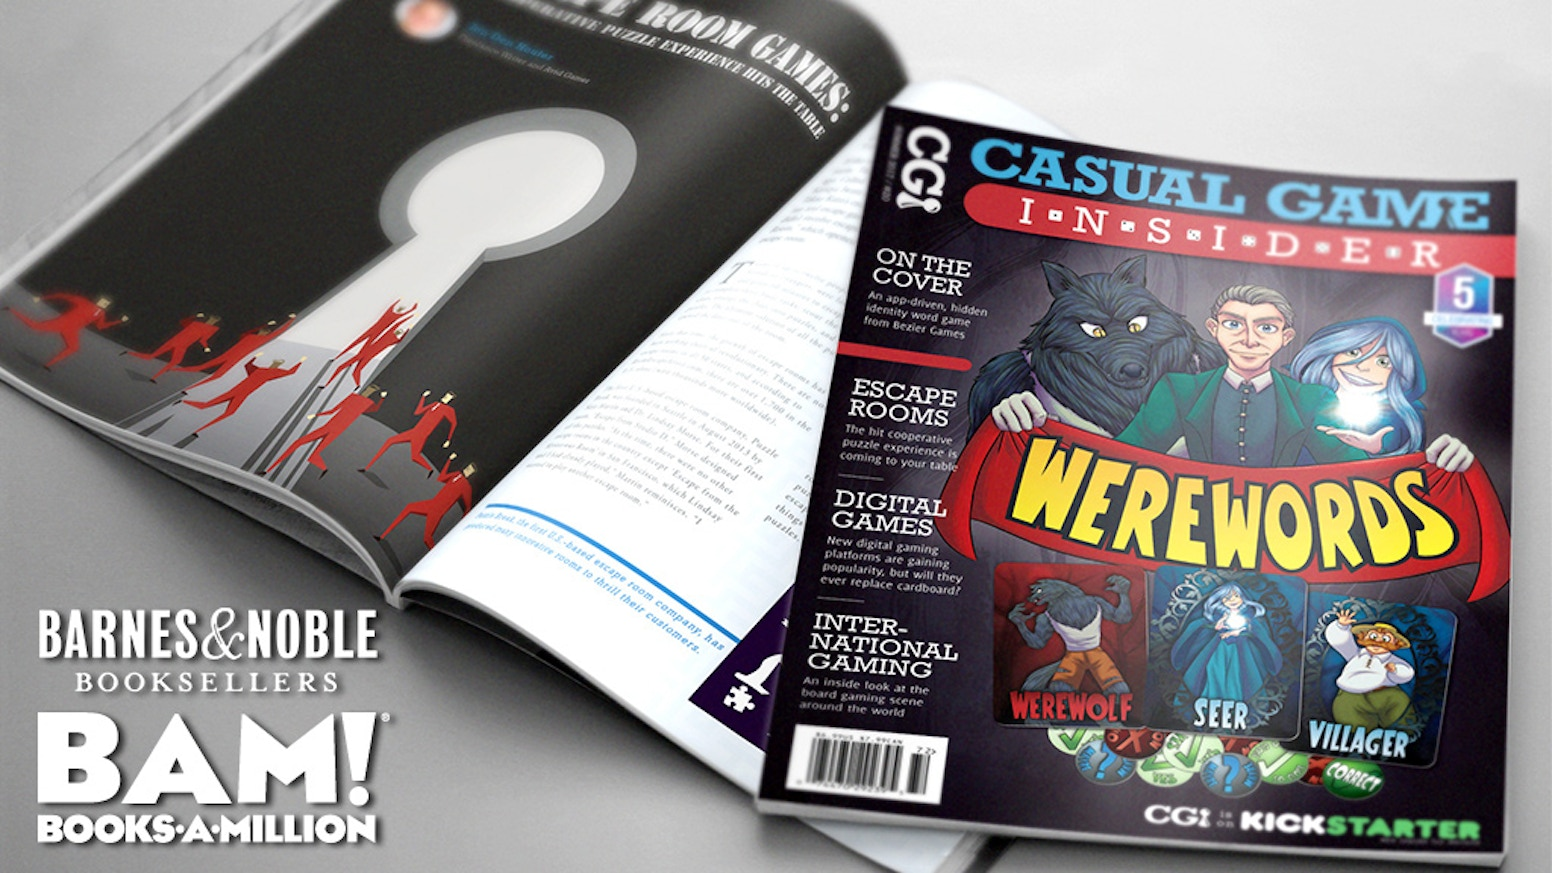 The premier guide to casual tabletop gaming, with professional design and quality content. Now with a new look!